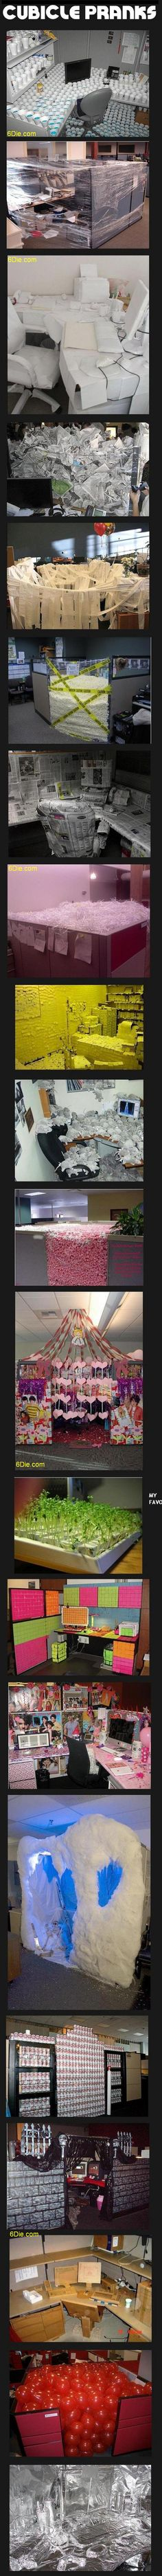 20 funny office cubicle pranks